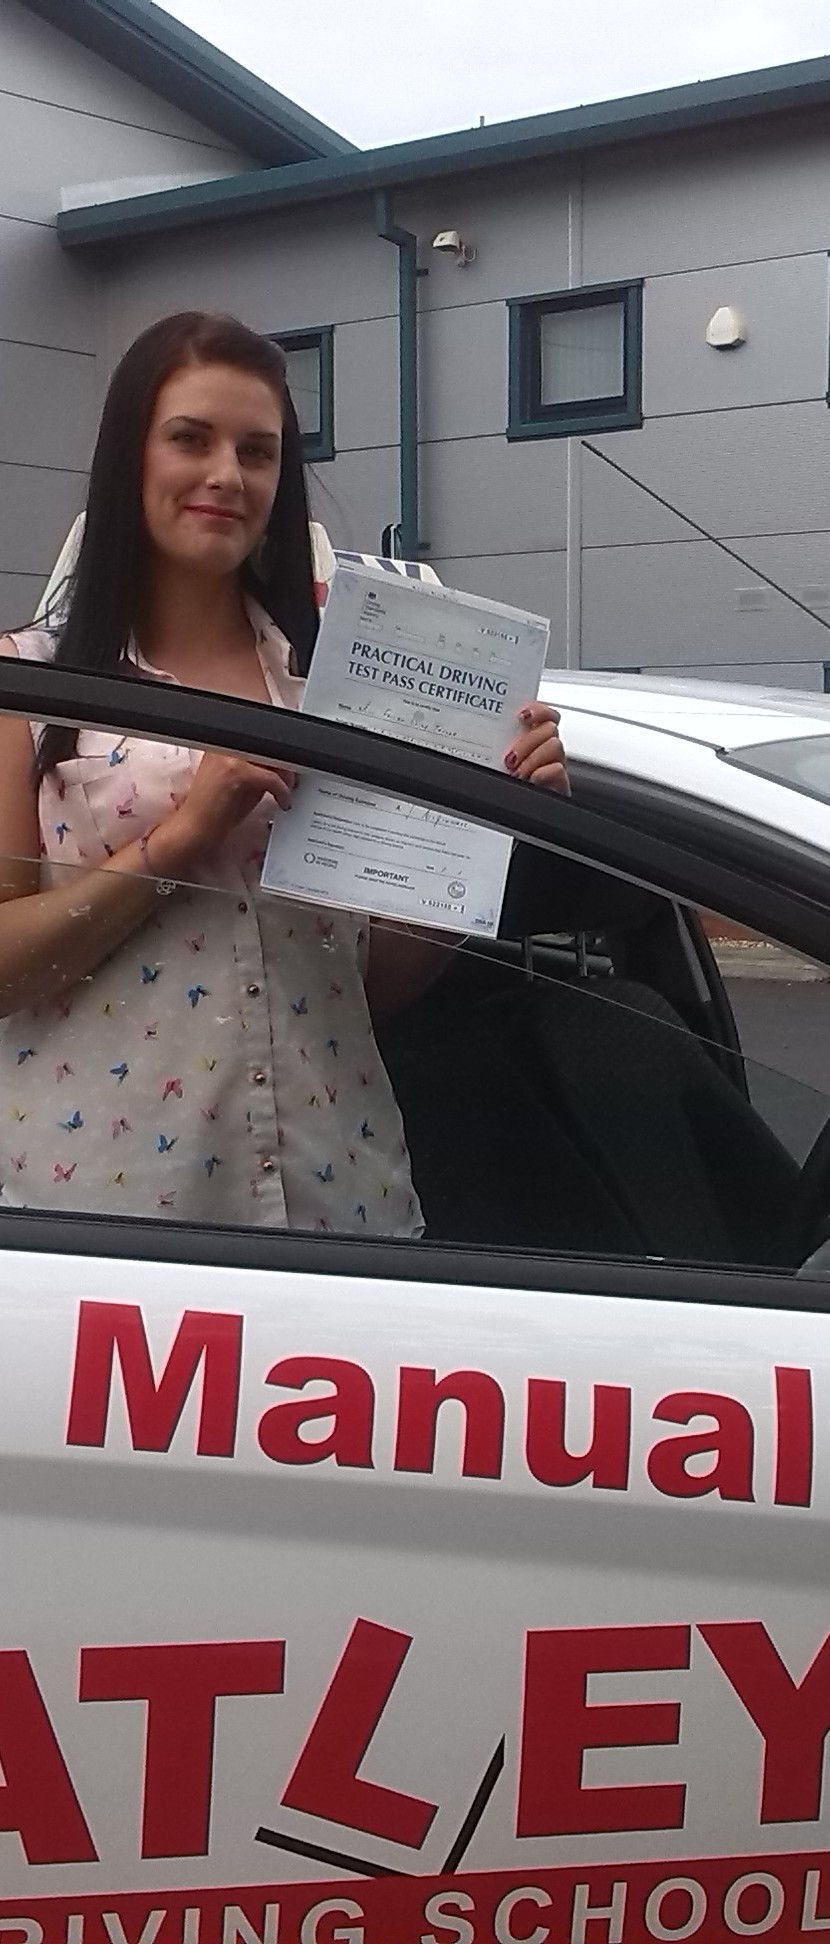 congratulations and very well done on passing your Driving Test